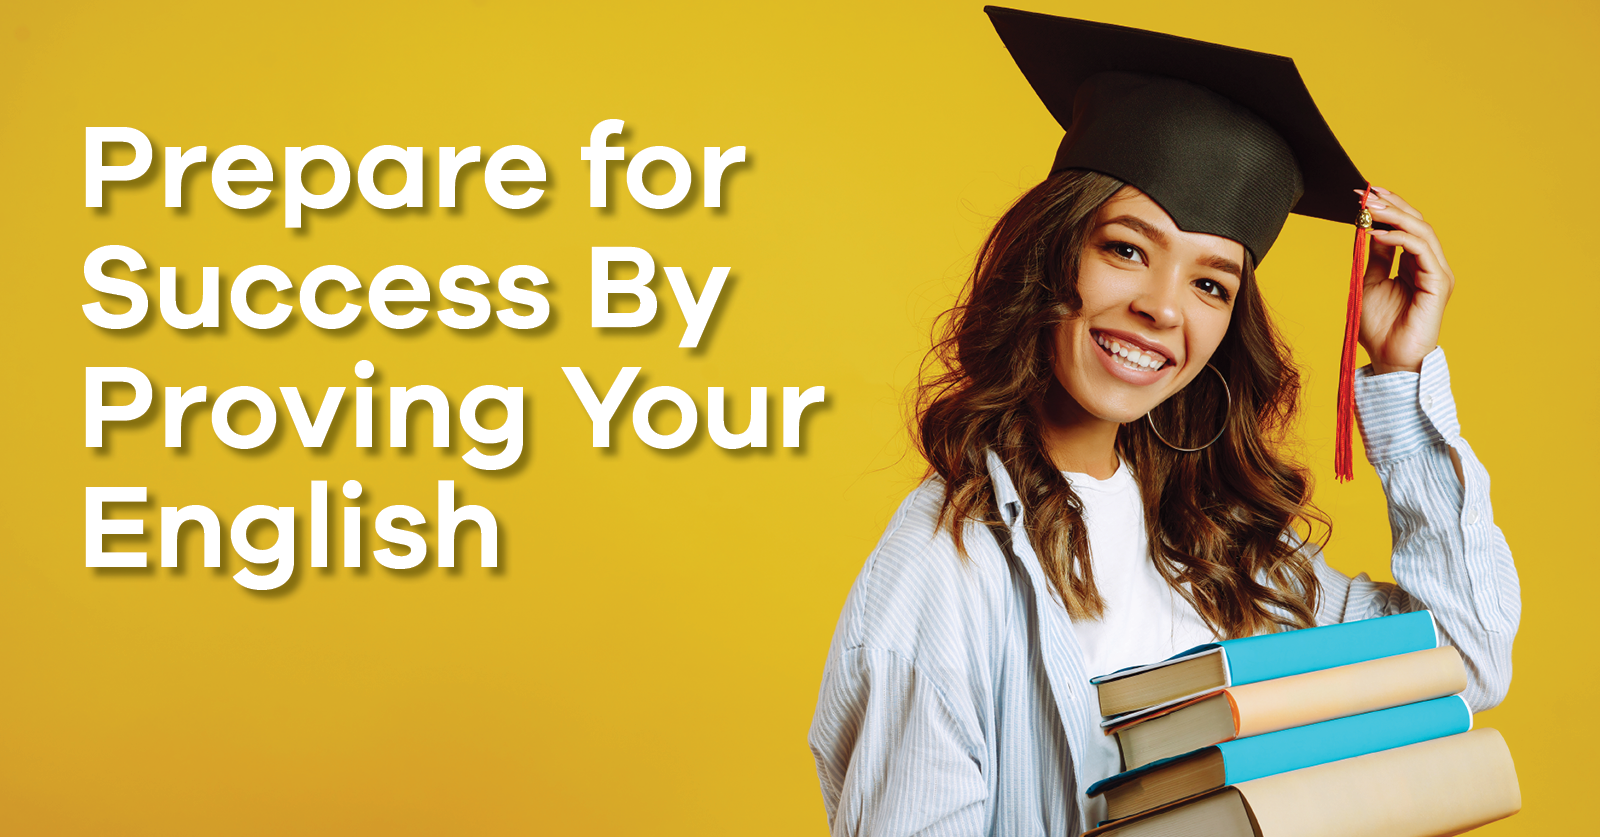 How to Prepare for Success by Proving Your English